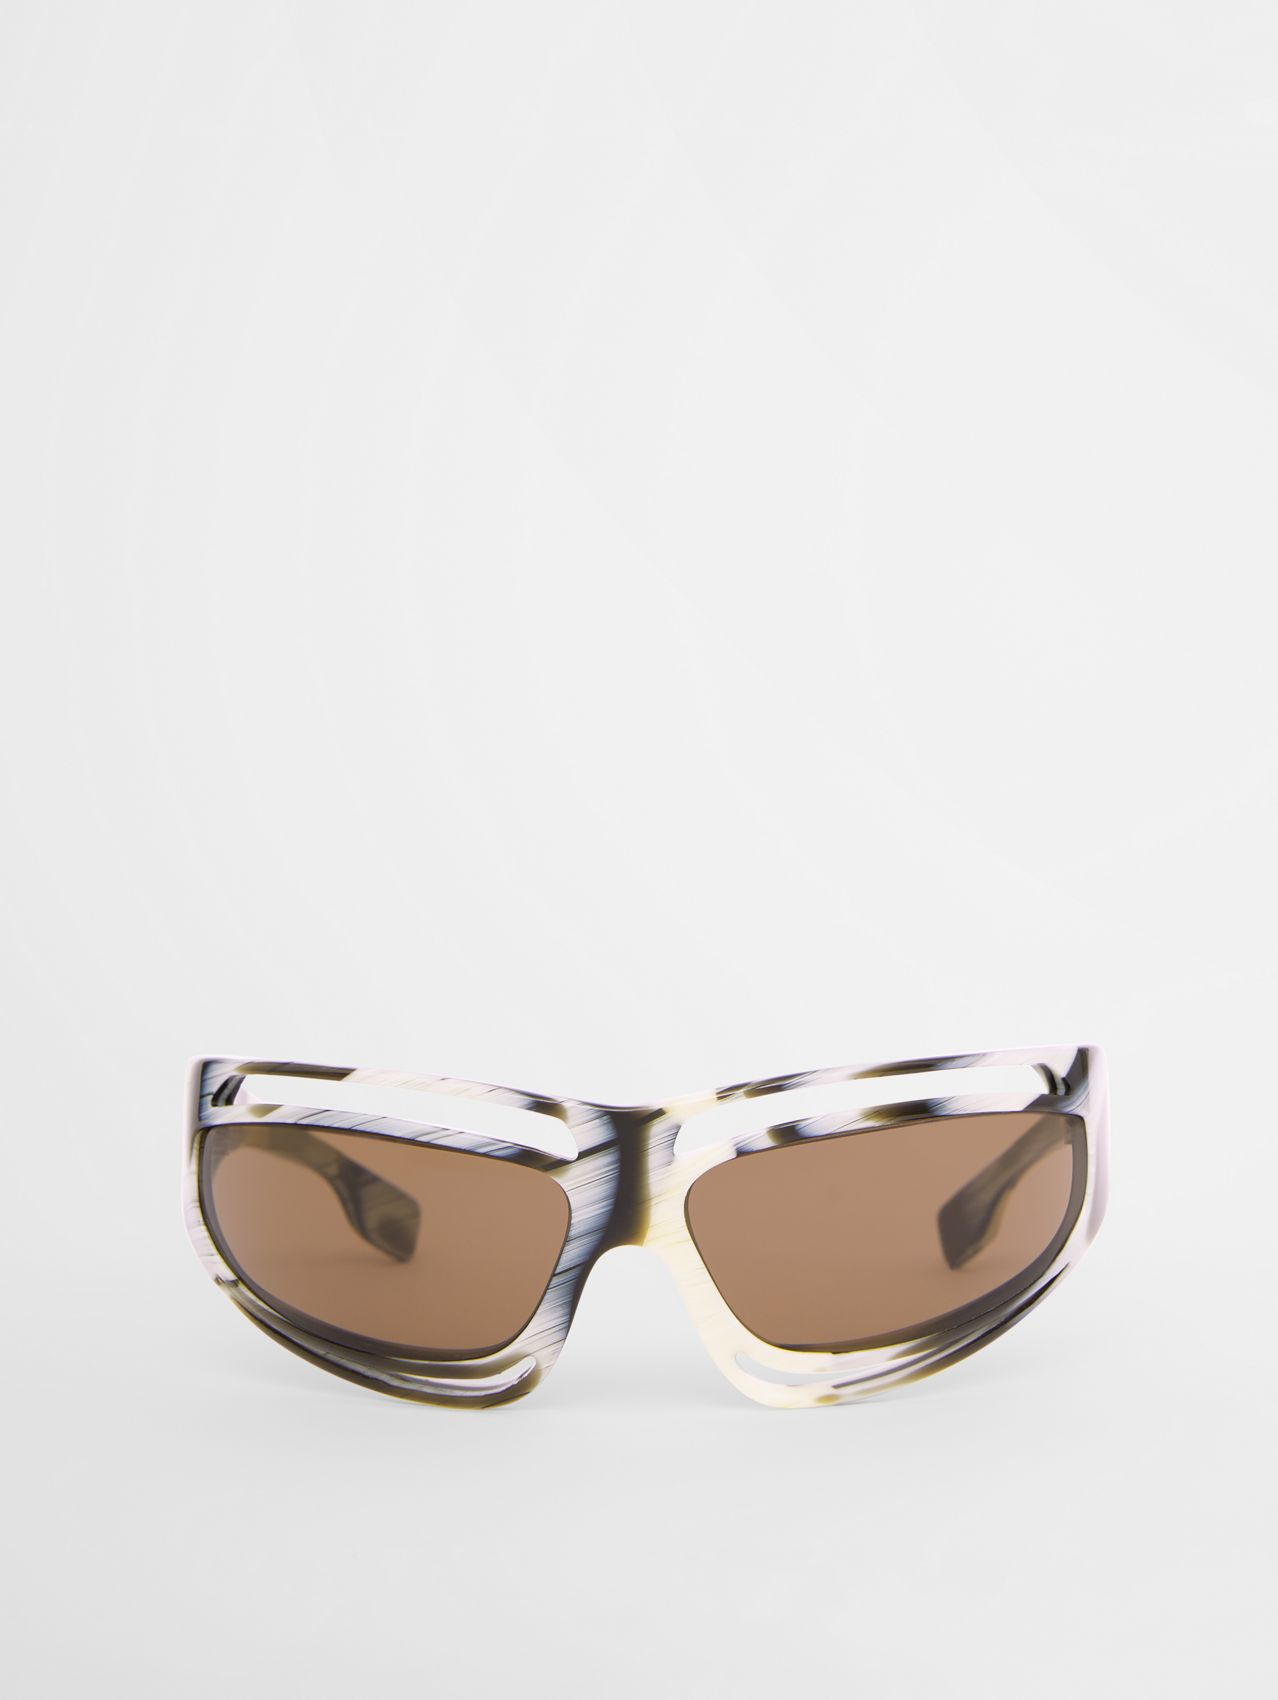 Eliot Sunglasses in Mid-tone Spotted Horn